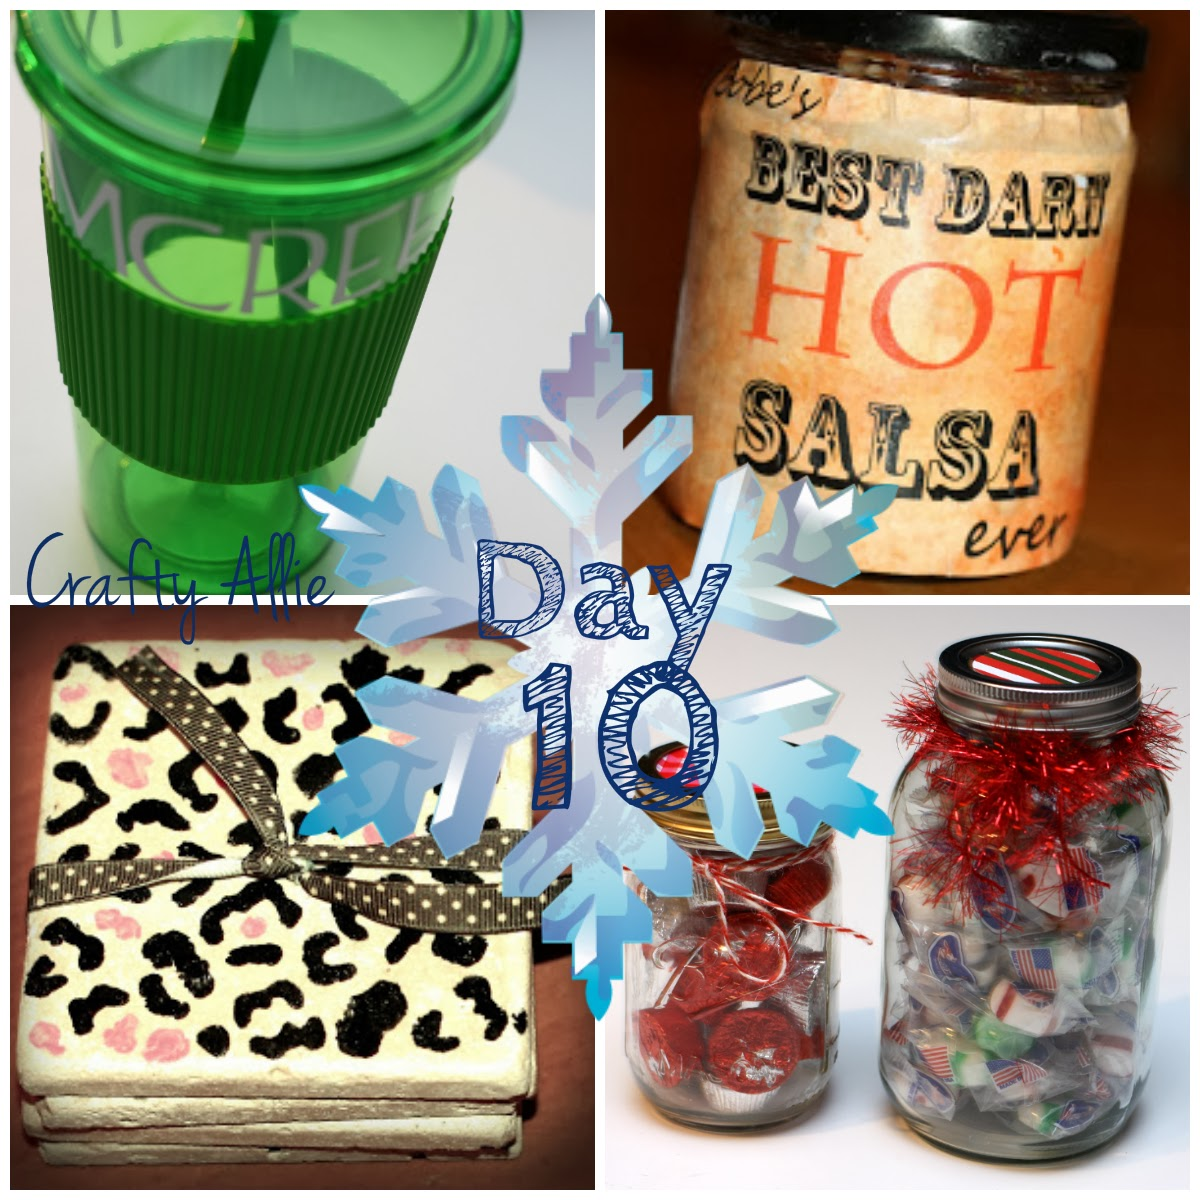 Small Christmas Gifts.Crafty Allie 12 Days Of Christmas Day 10 Small Christmas